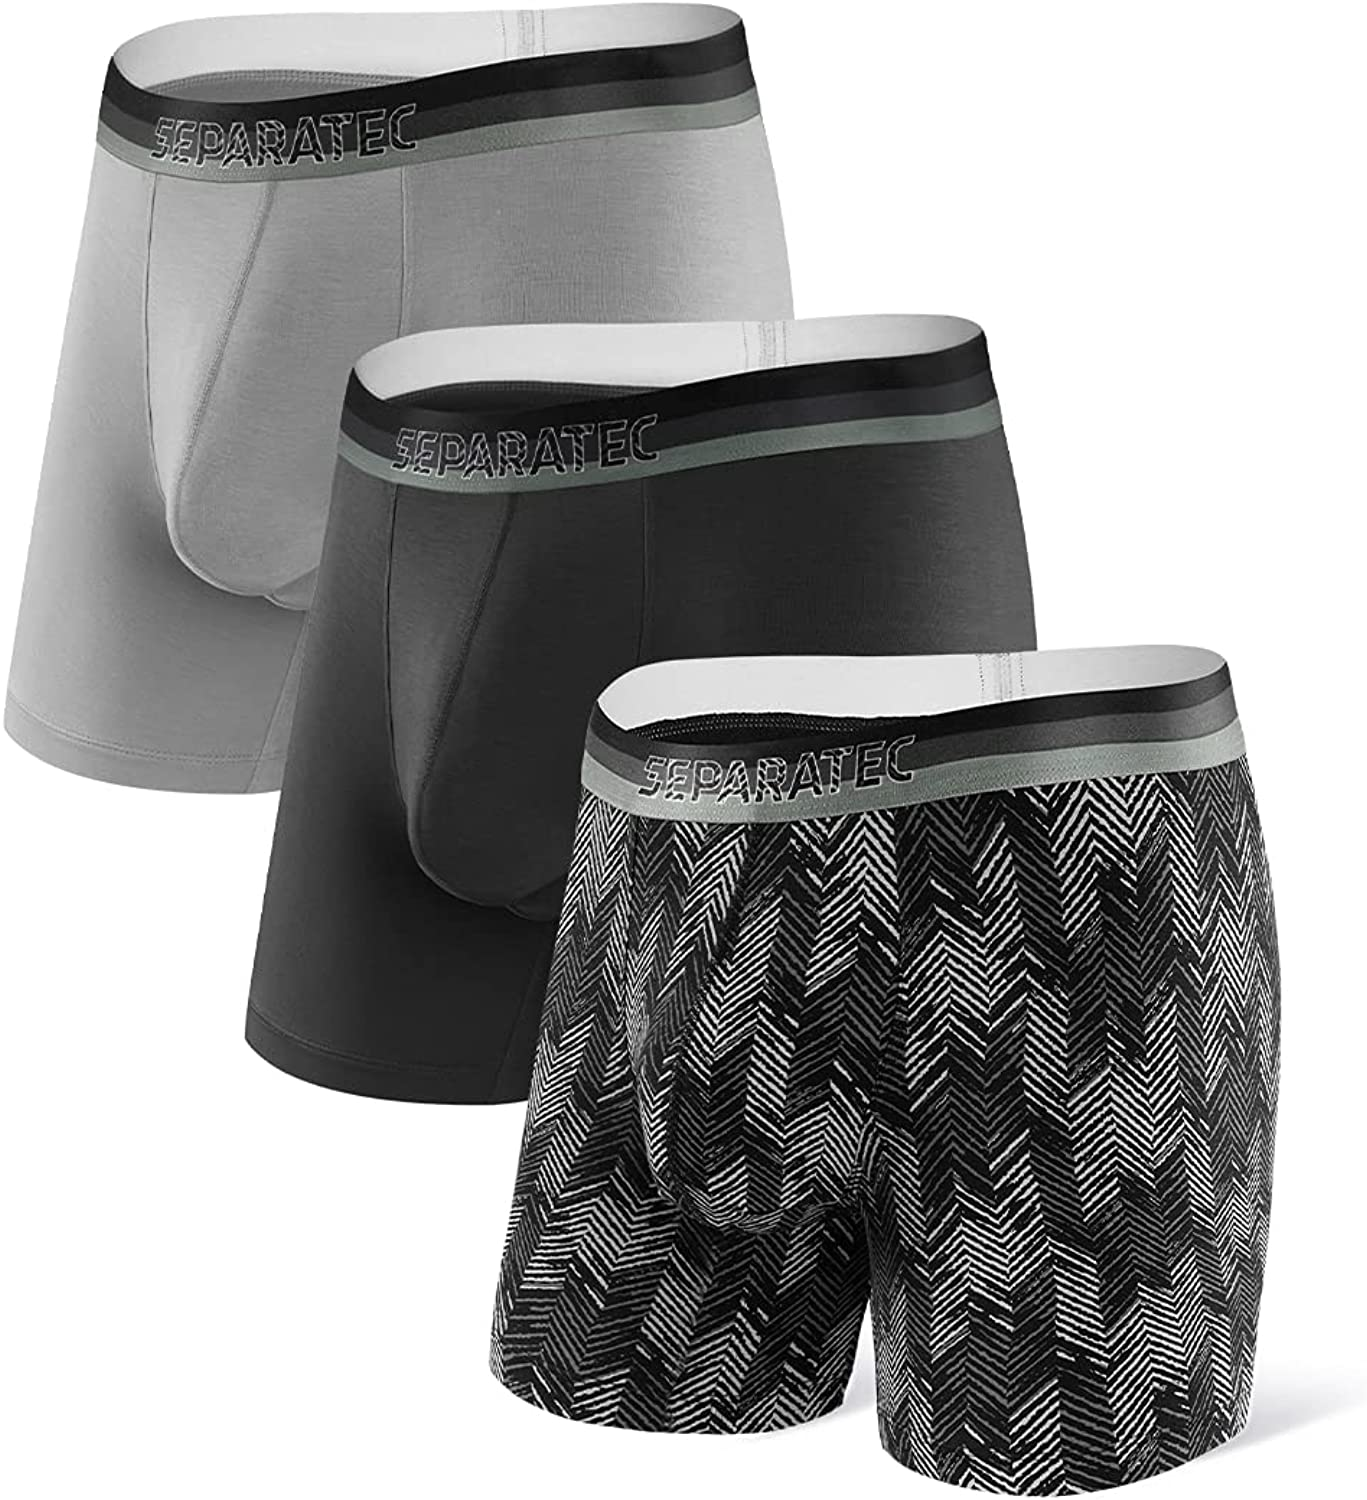 Separatec Men's Underwear 3 Pack Basic Bamboo Rayon Soft Breathable Dual Pouch Boxer Briefs